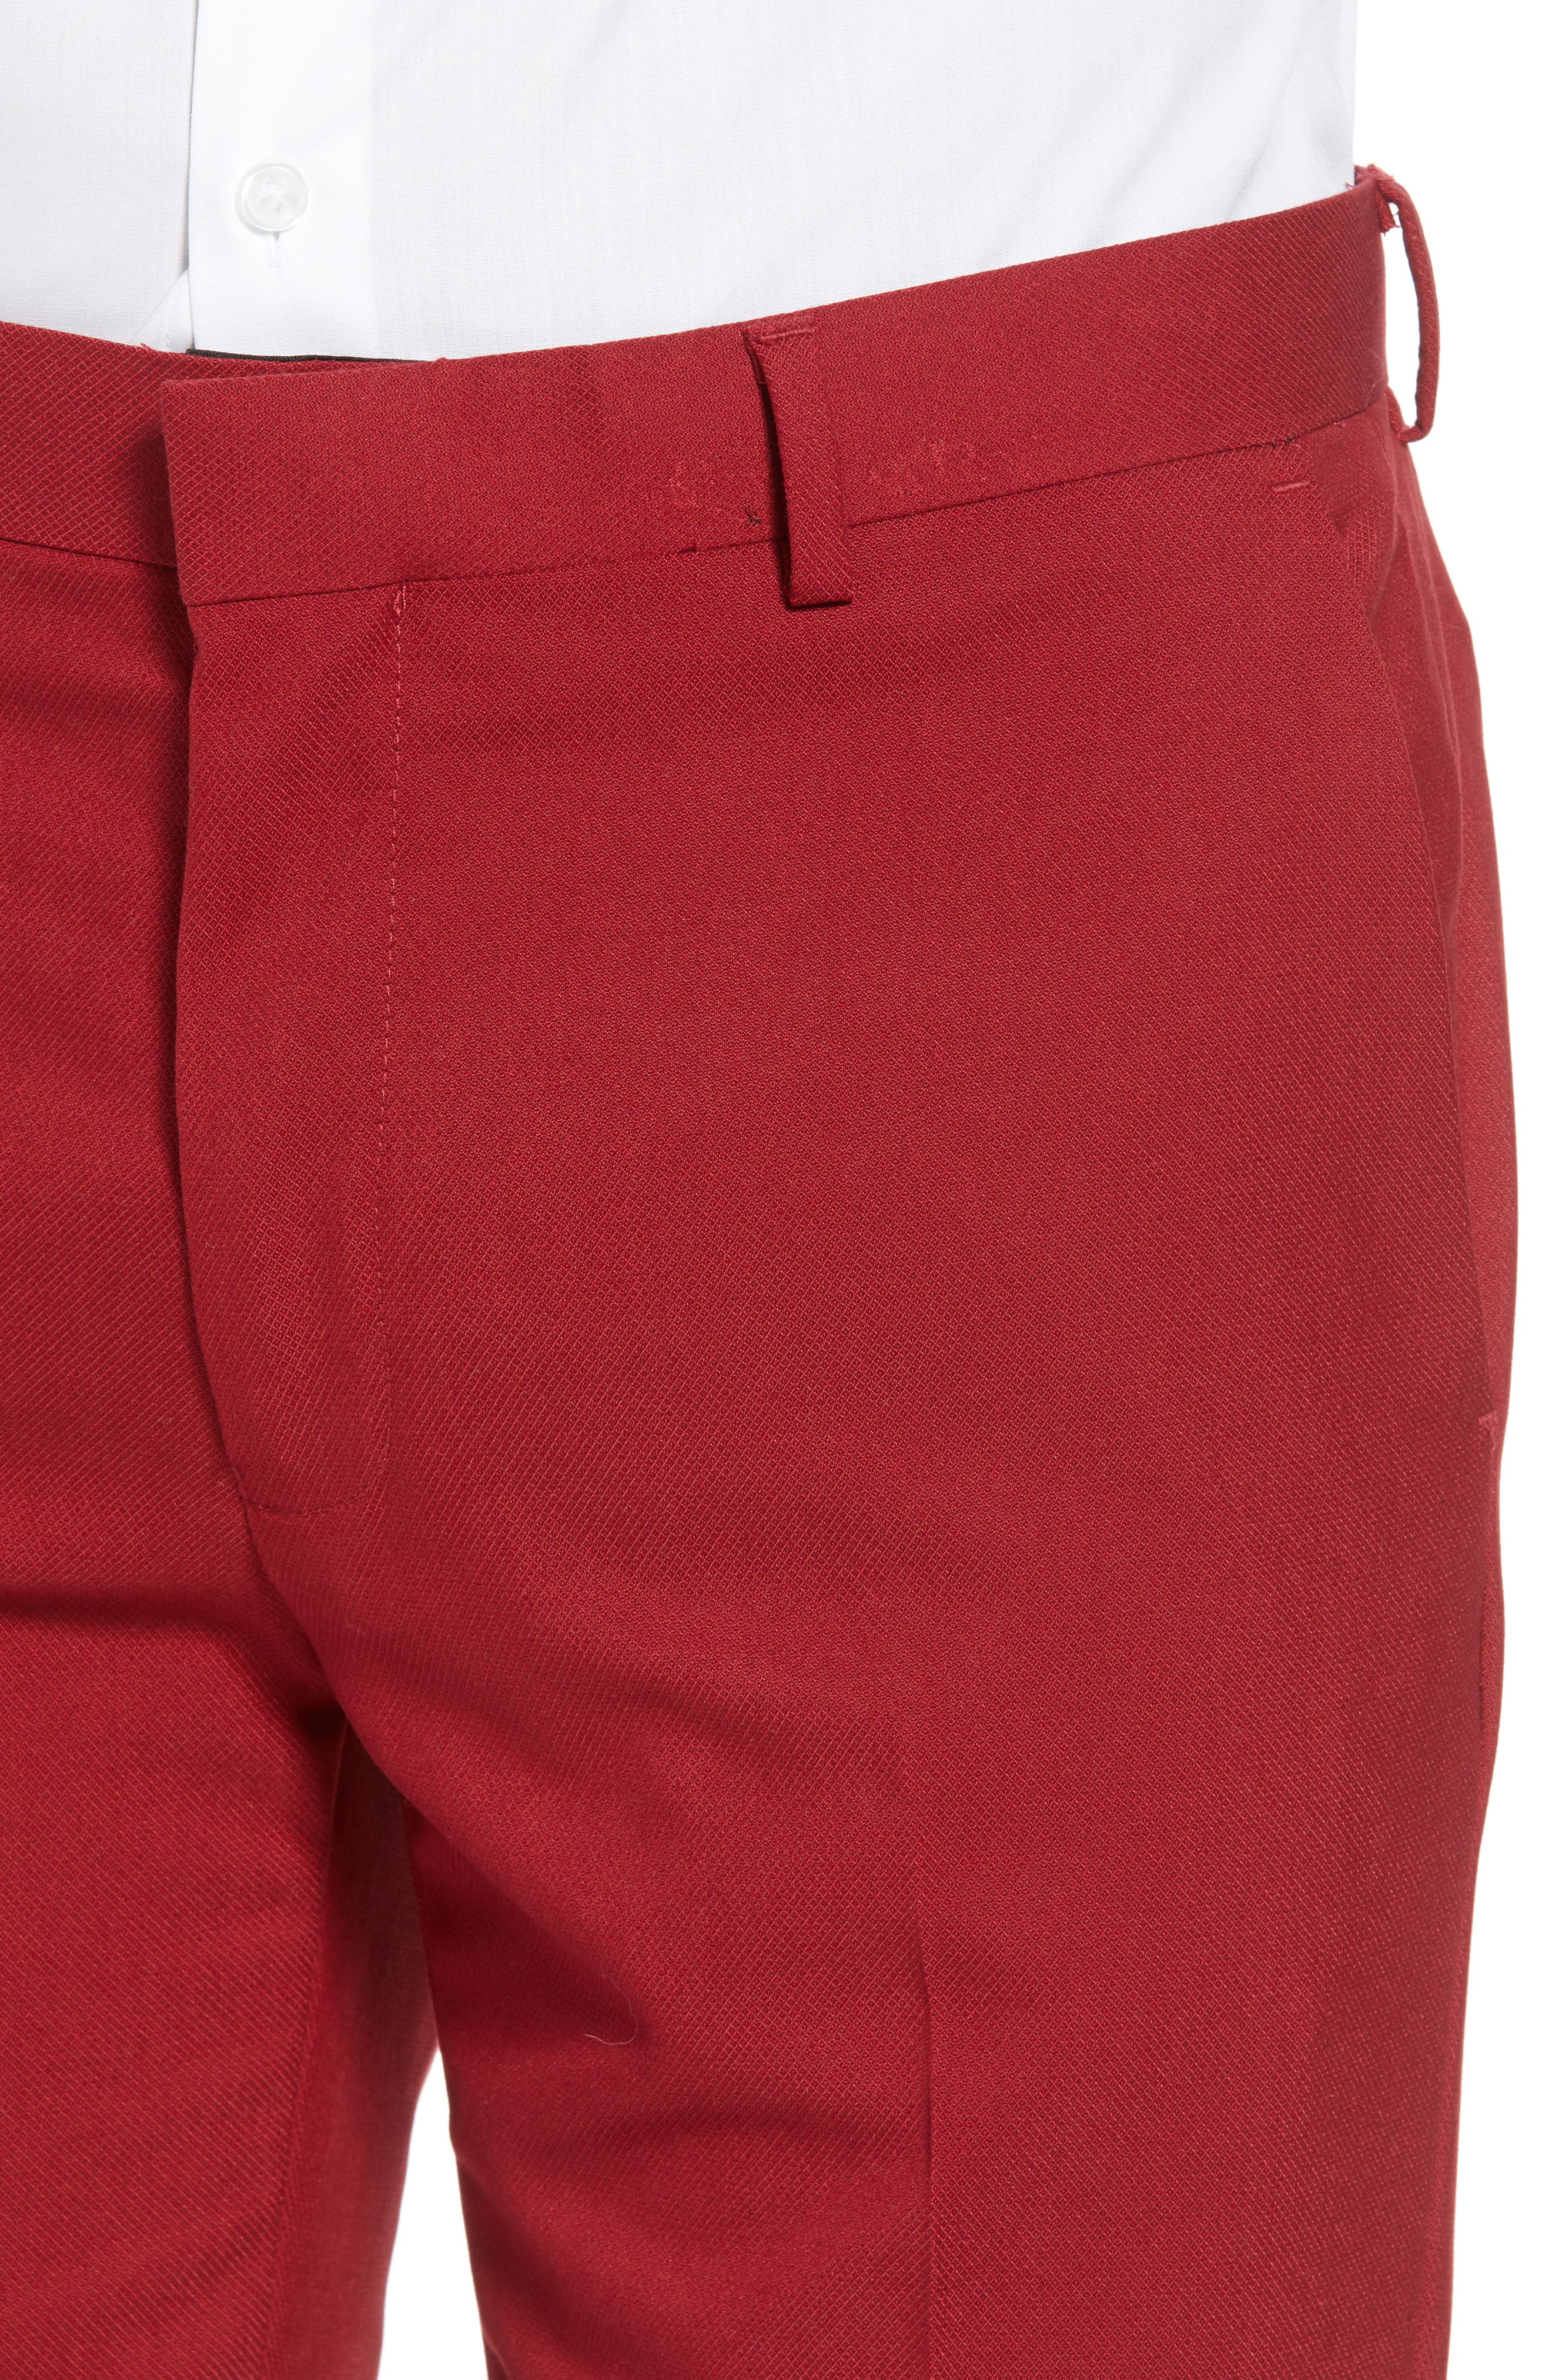 Skinny Fit Suit Trousers,                             Alternate thumbnail 4, color,                             RED